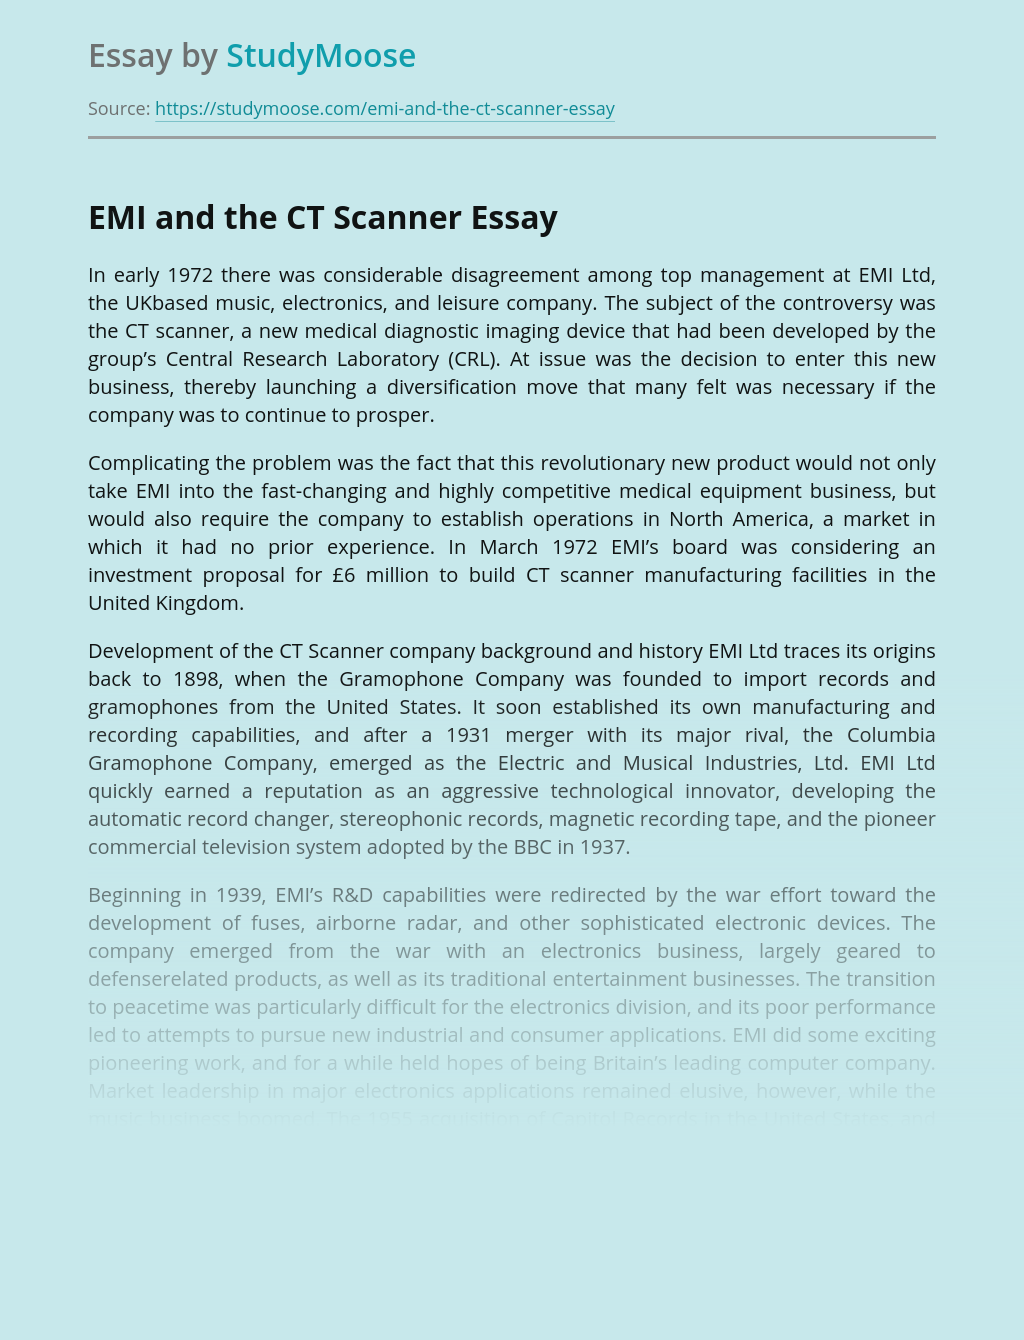 EMI and the CT Scanner Manufacturing